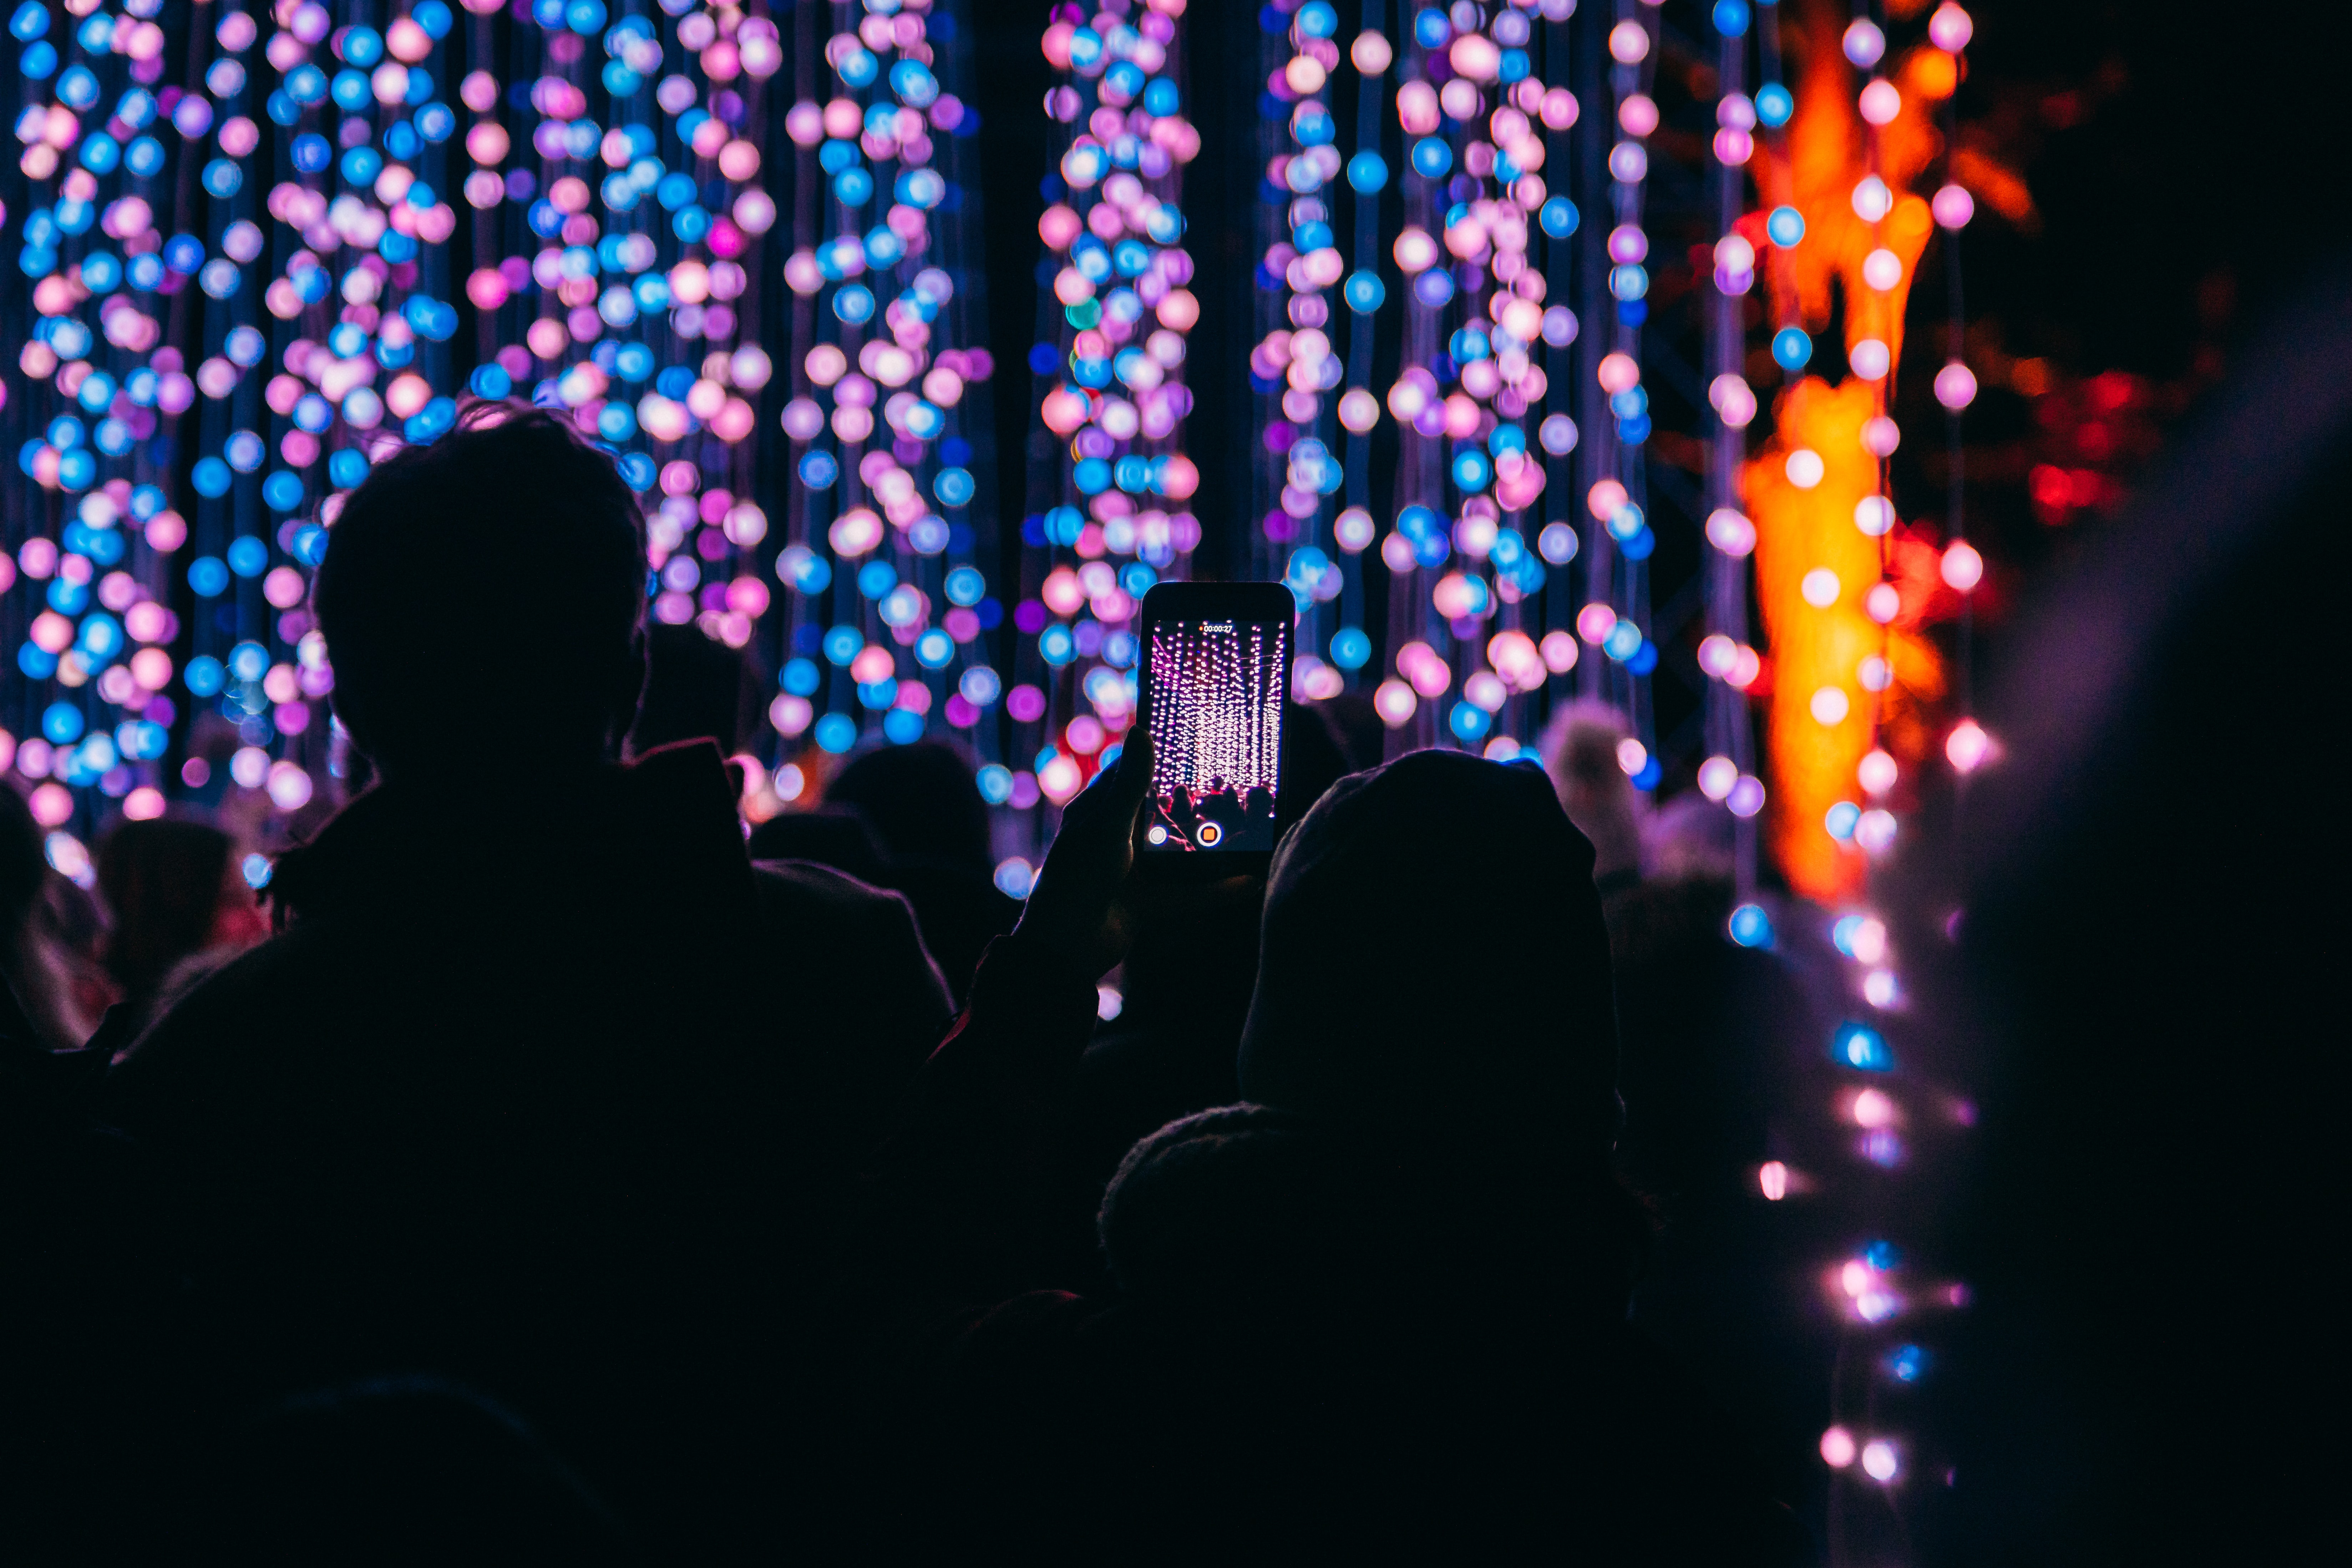 bokeh photography of person taking picture at stage